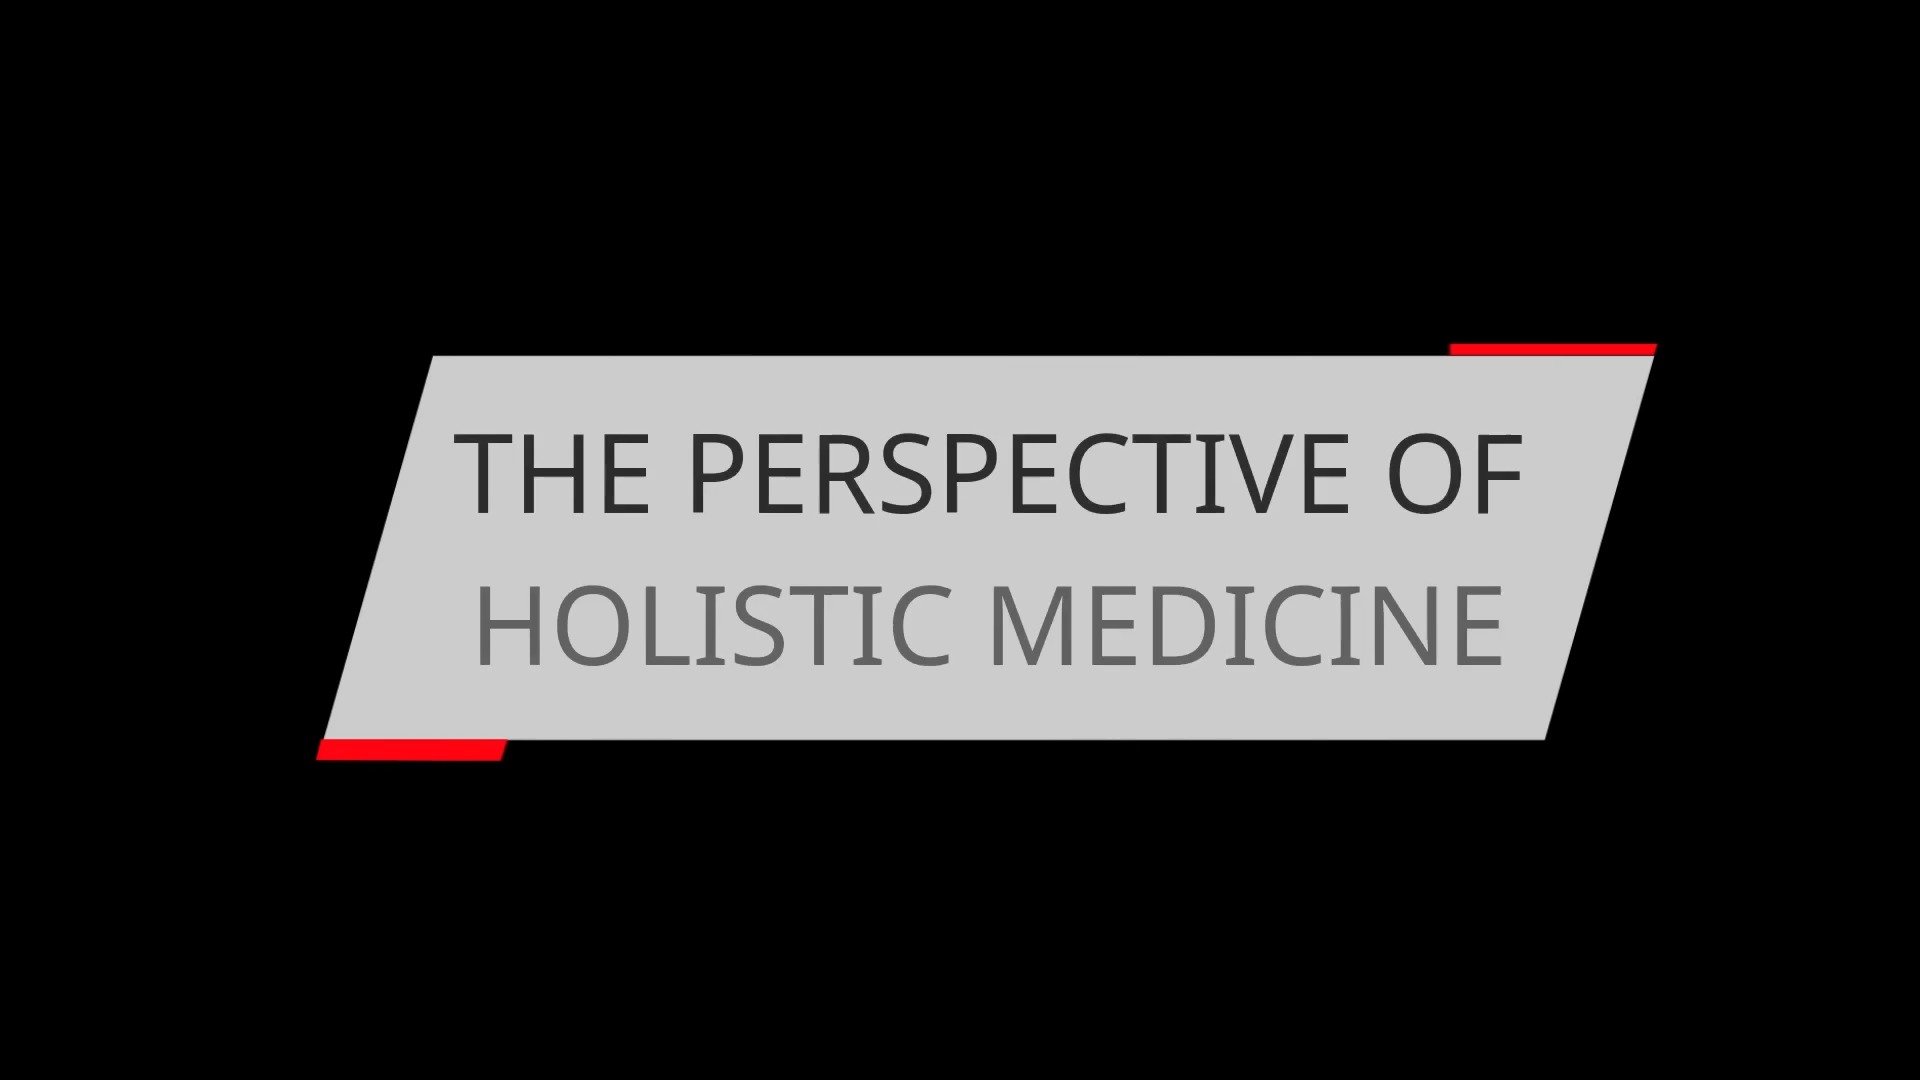 THE PERSPECTIVE OF HOLISTIC MEDICINE